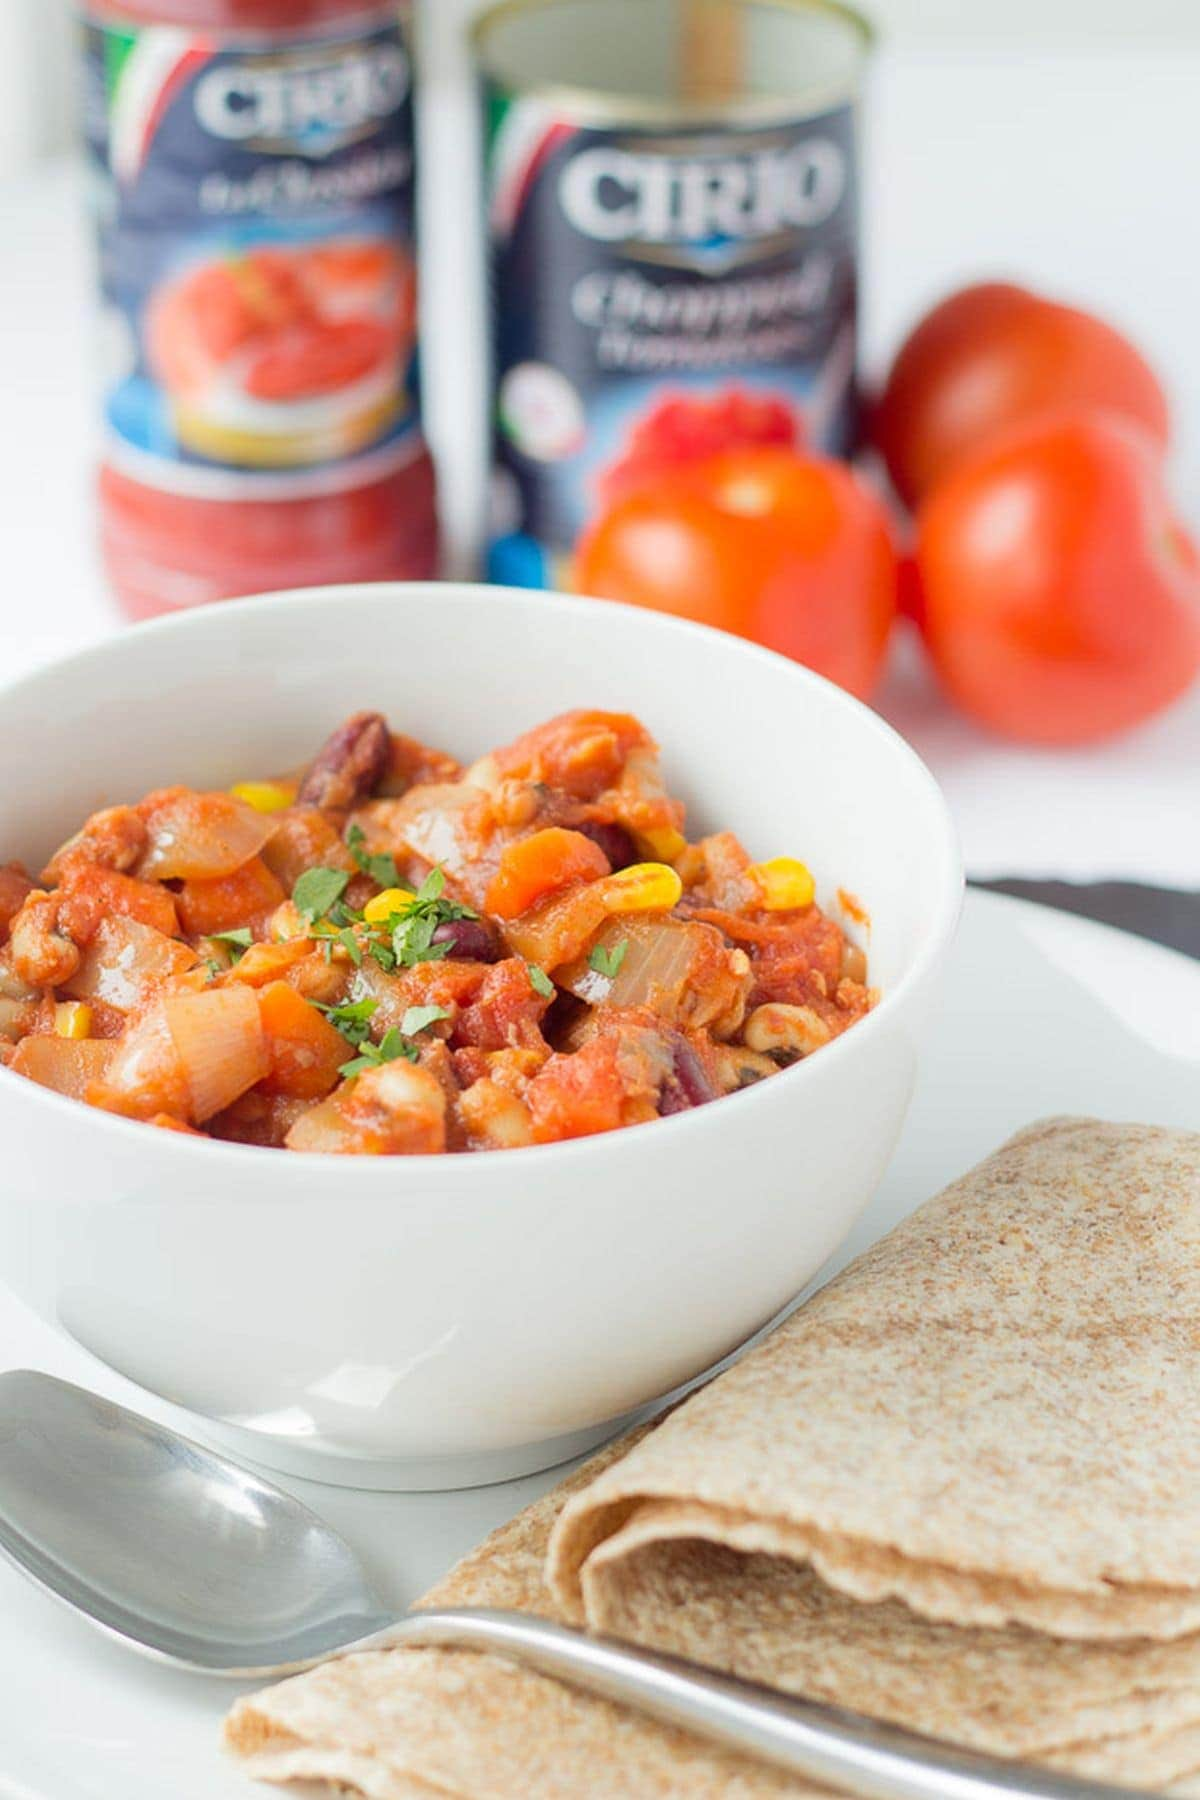 A bowl of easy vegan chilli with a spoon in front and wholemeal wraps to the side. Cans of chopped tomatoes and three tomatoes in the background.